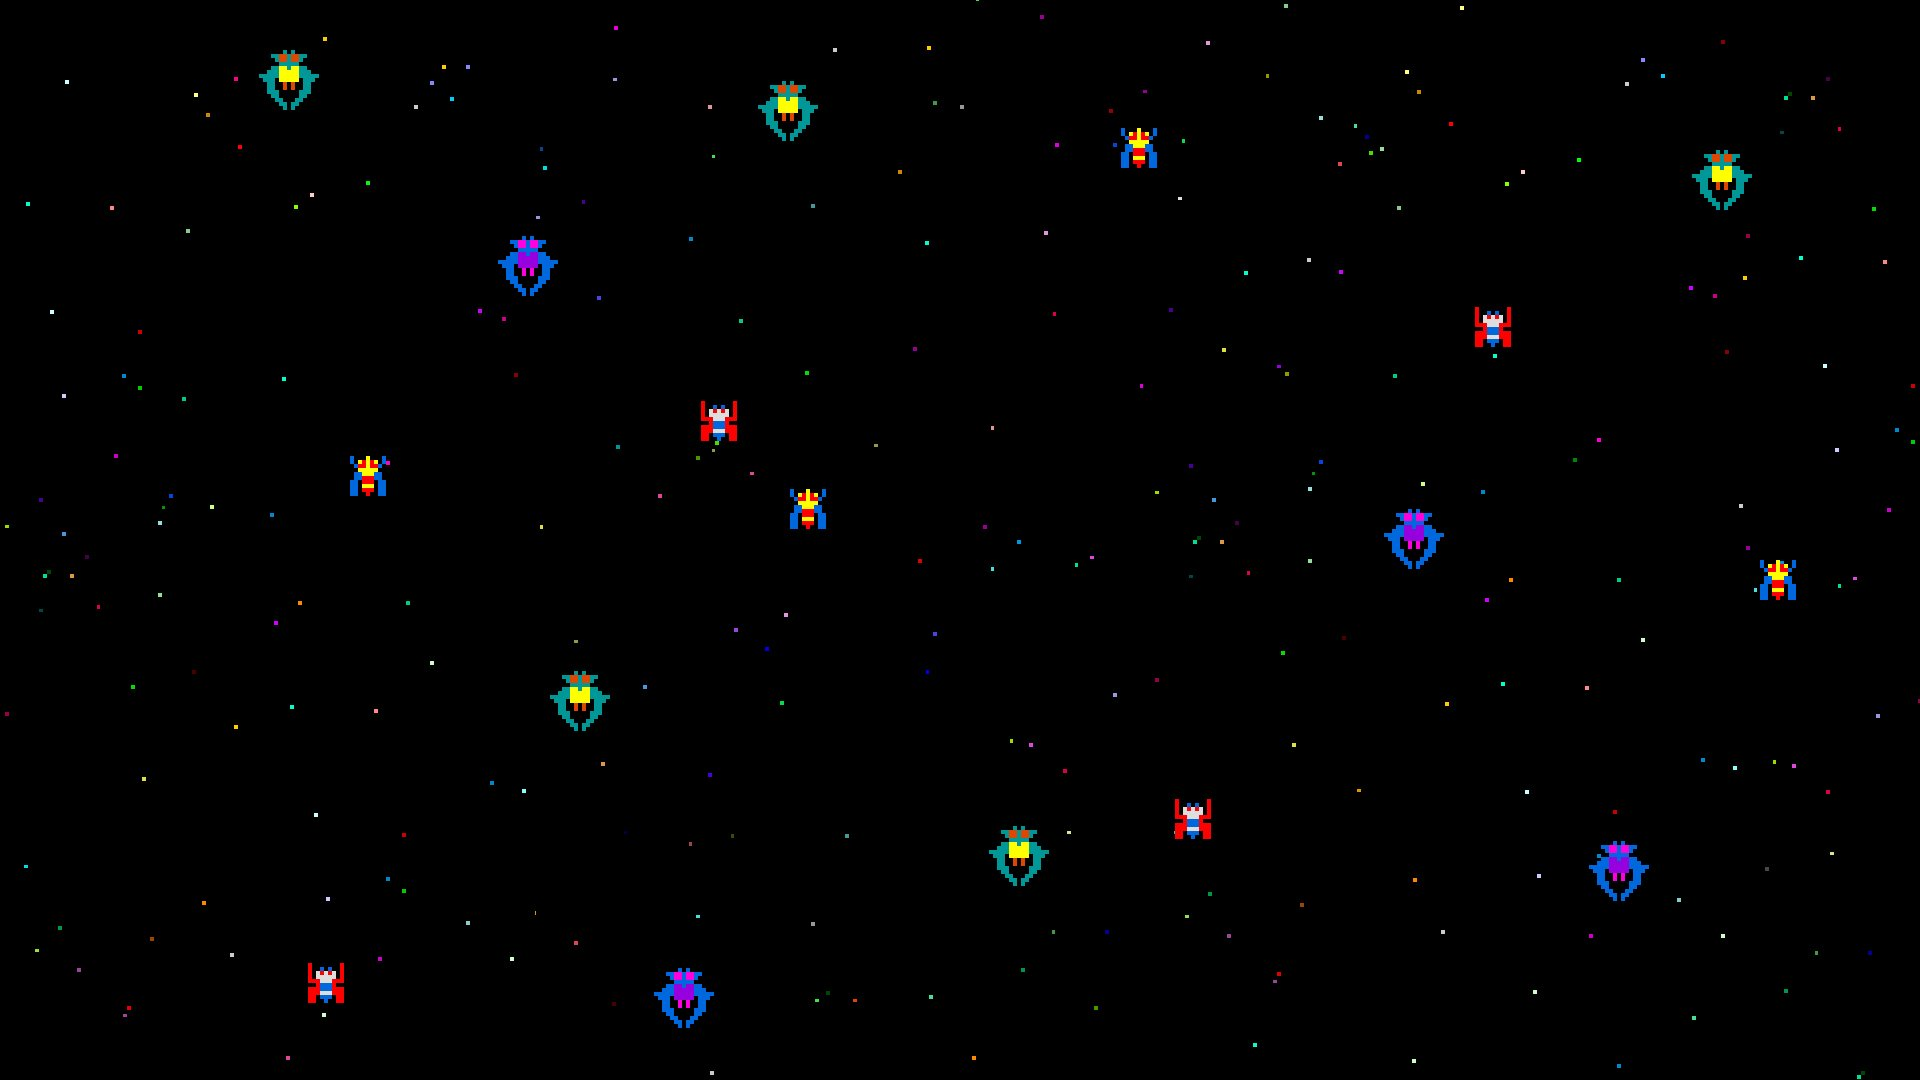 Galaga HD Wallpaper 13   1920 X 1080 stmednet 1920x1080